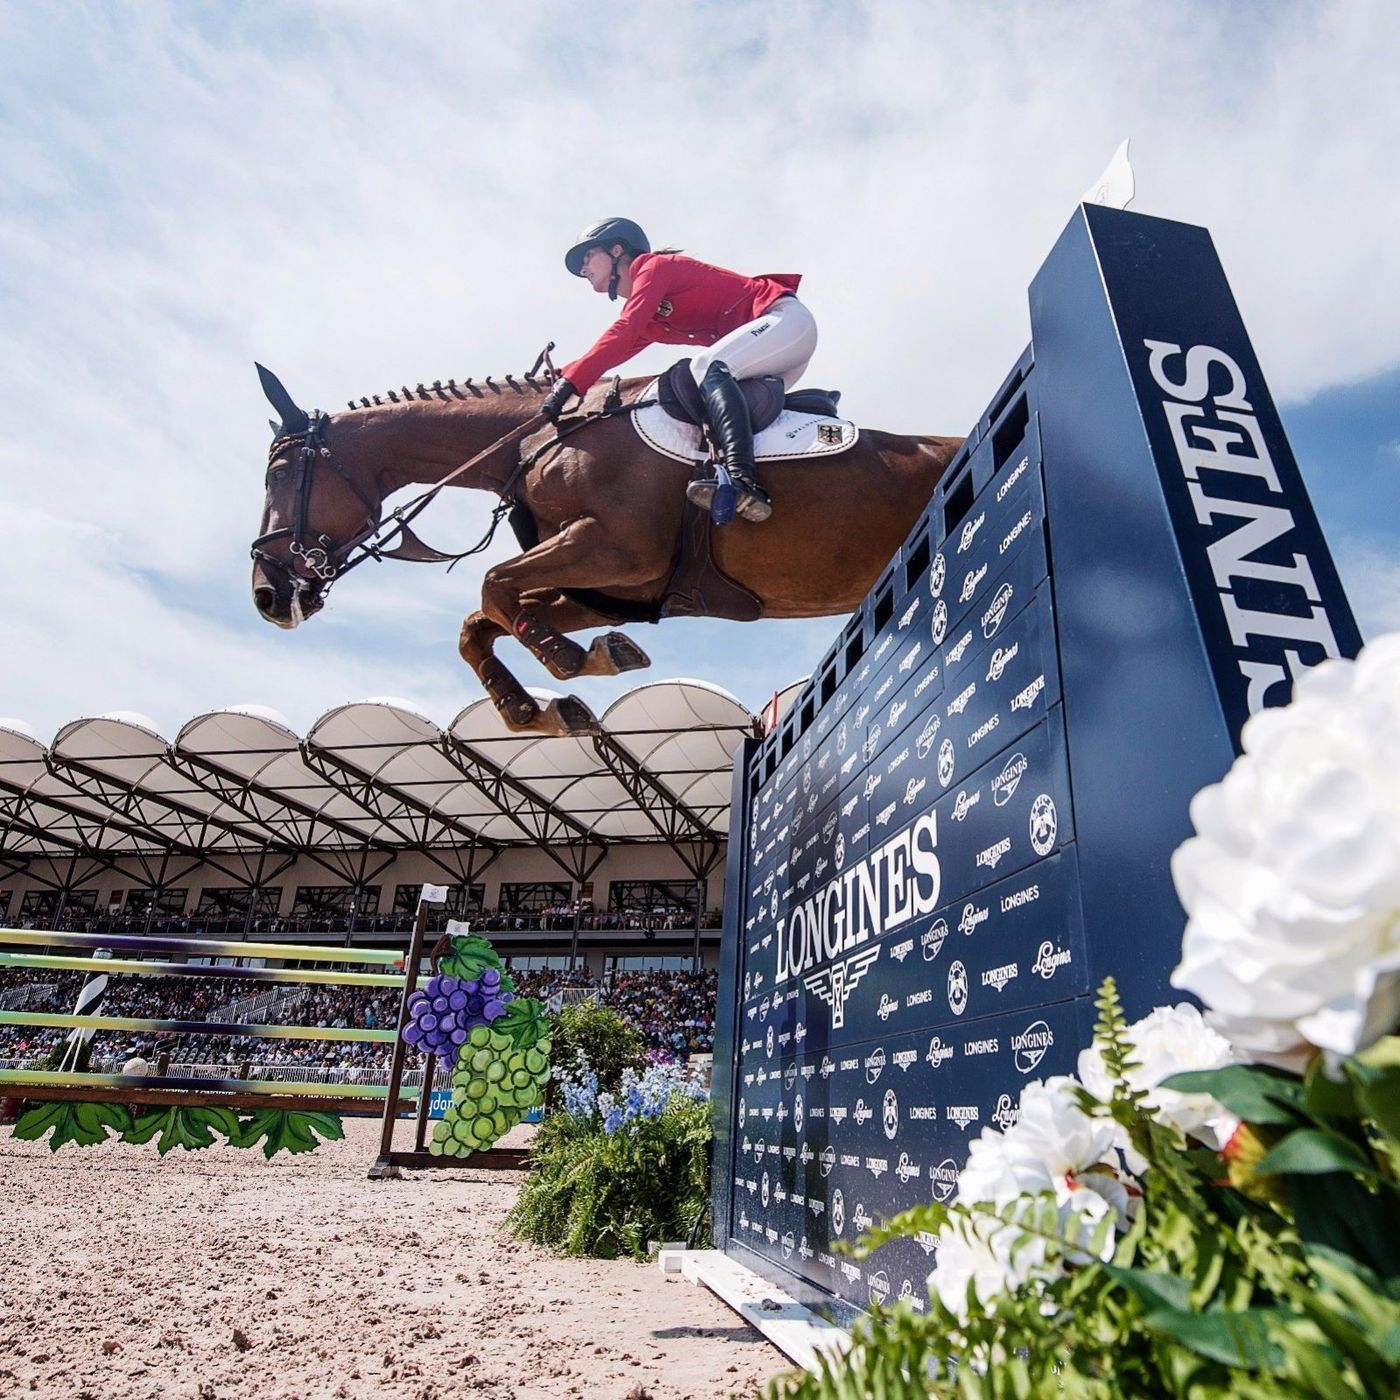 Longines Show Jumping Event: The FEI World Equestrian Games ended beautifully with Germany topping the medal table   3